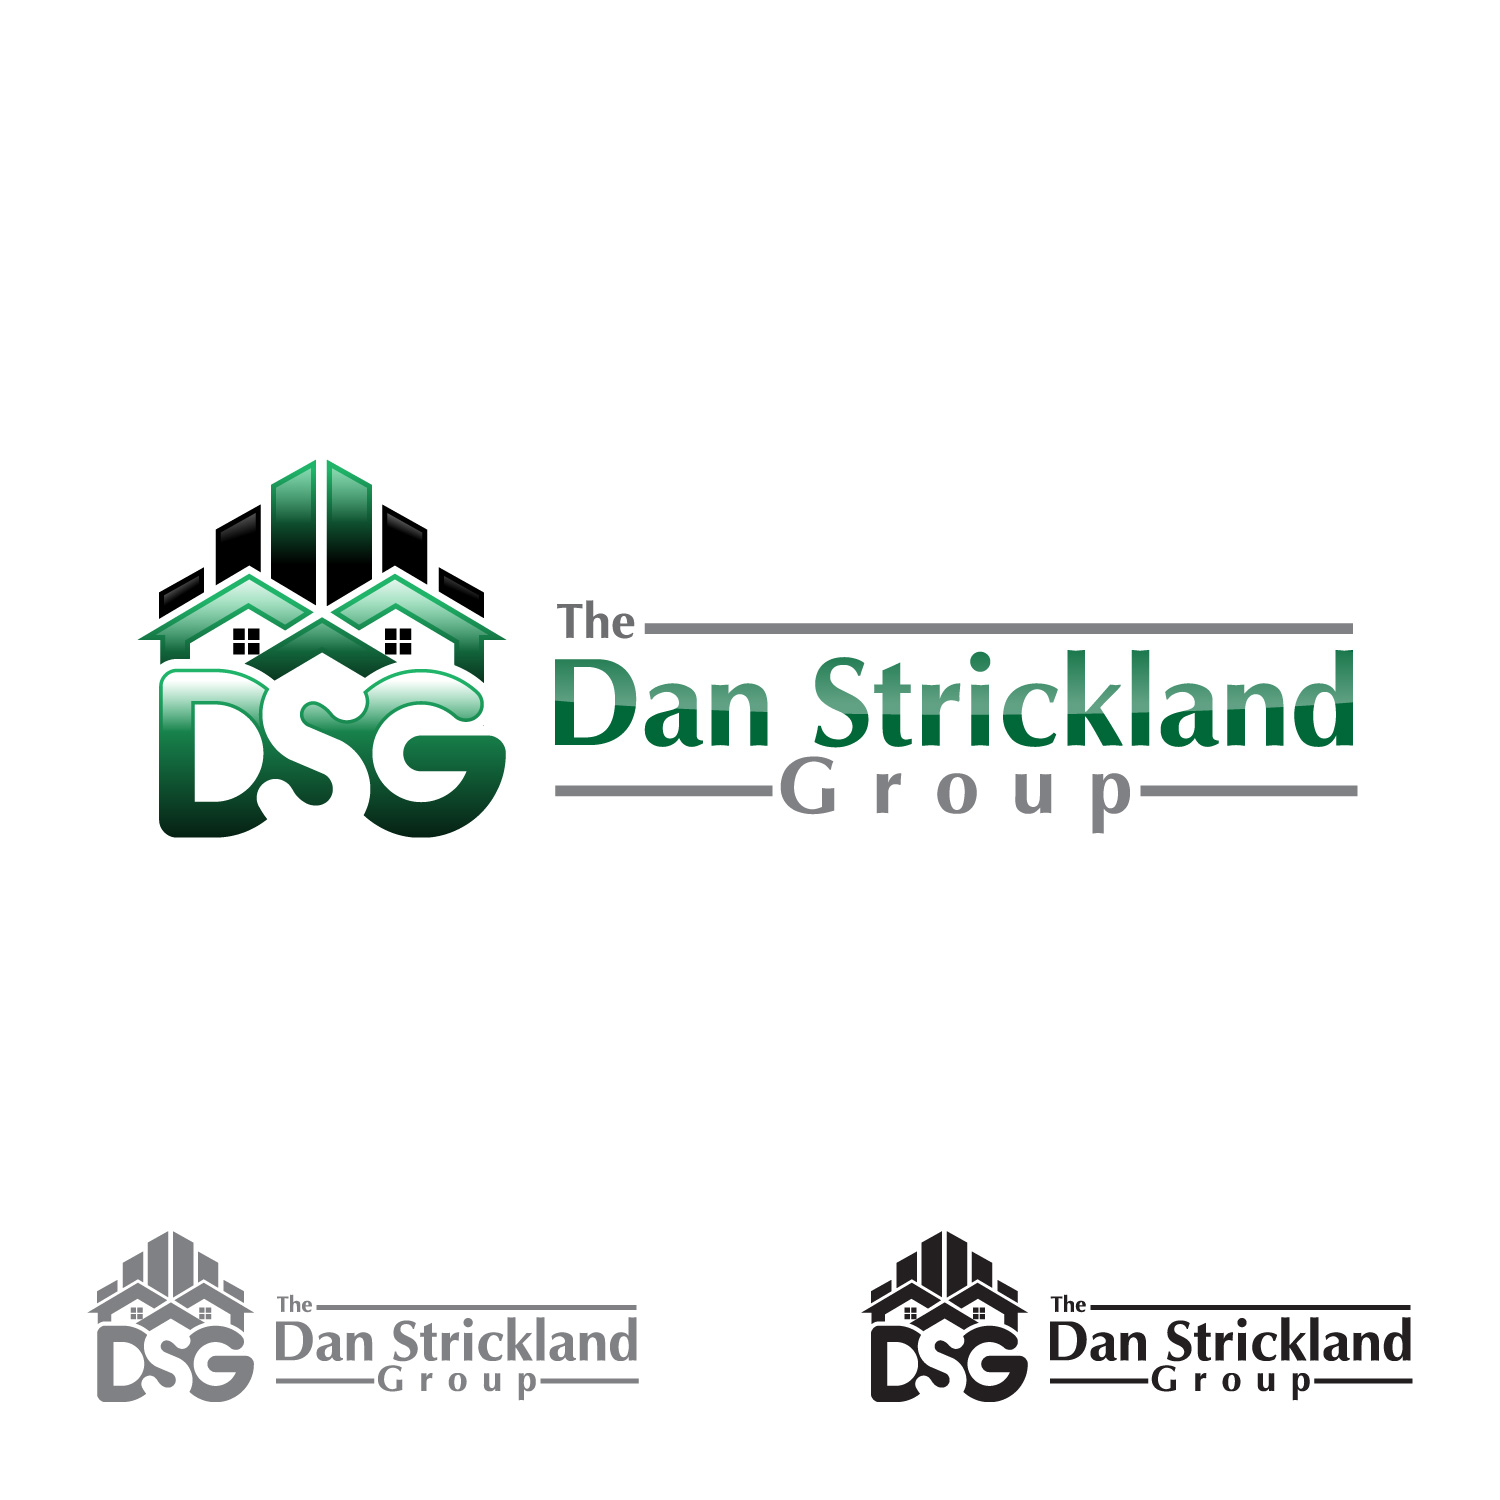 Logo Design by lagalag - Entry No. 21 in the Logo Design Contest Creative Logo Design for The Dan Strickland Group.